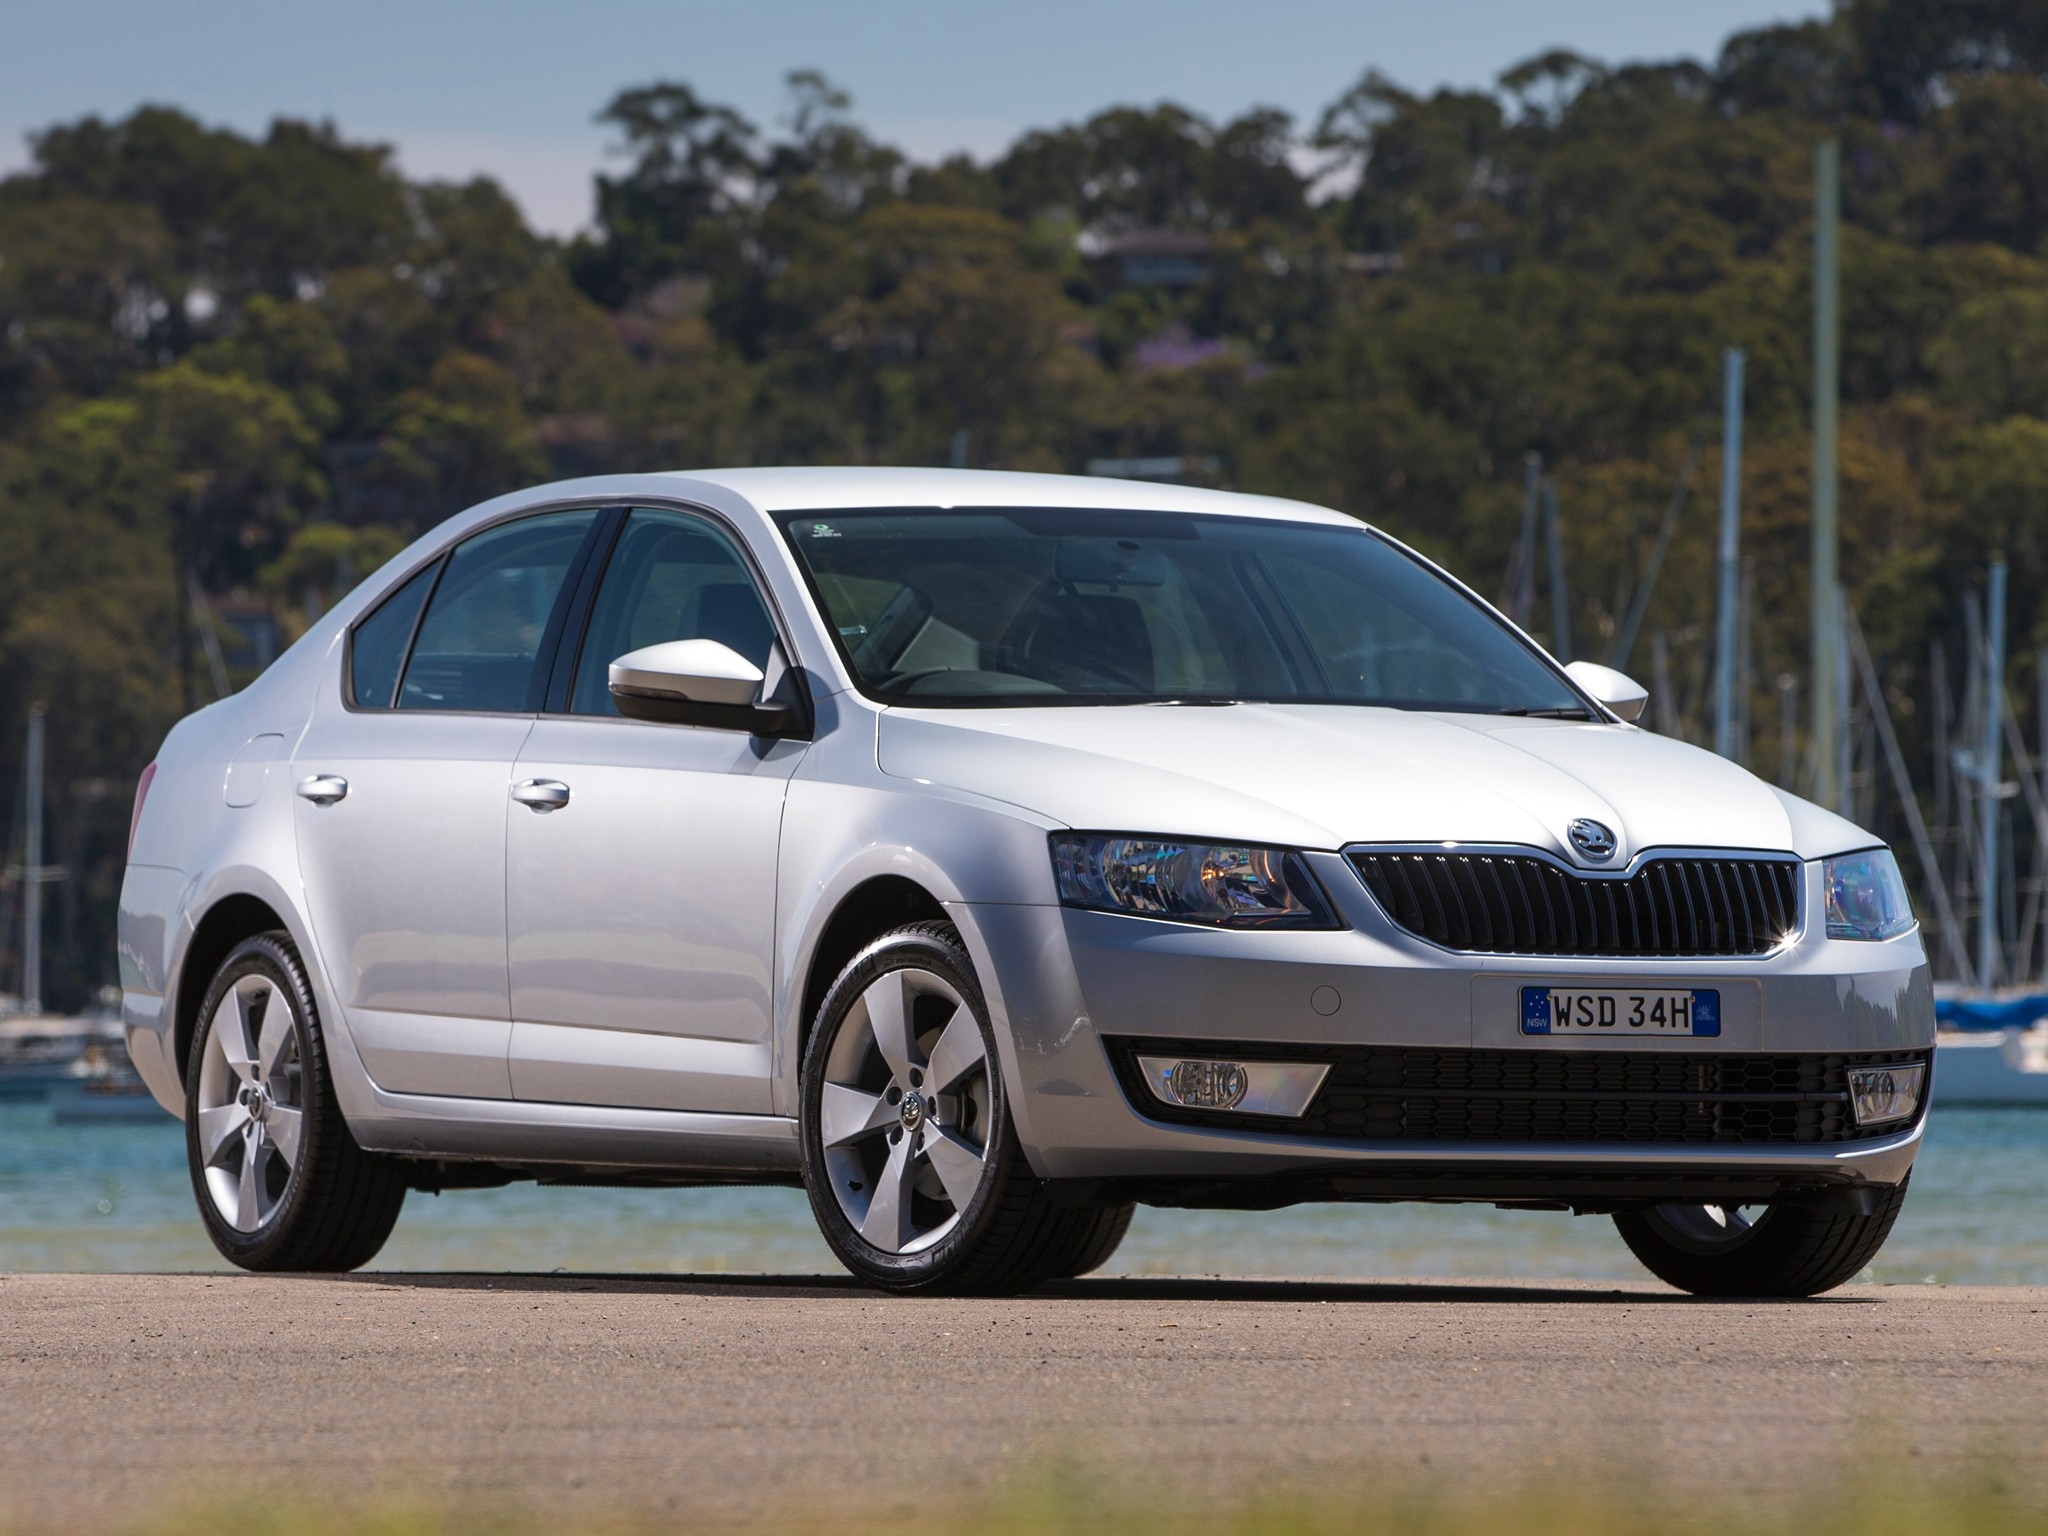 skoda octavia specs photos 2013 2014 2015 2016. Black Bedroom Furniture Sets. Home Design Ideas